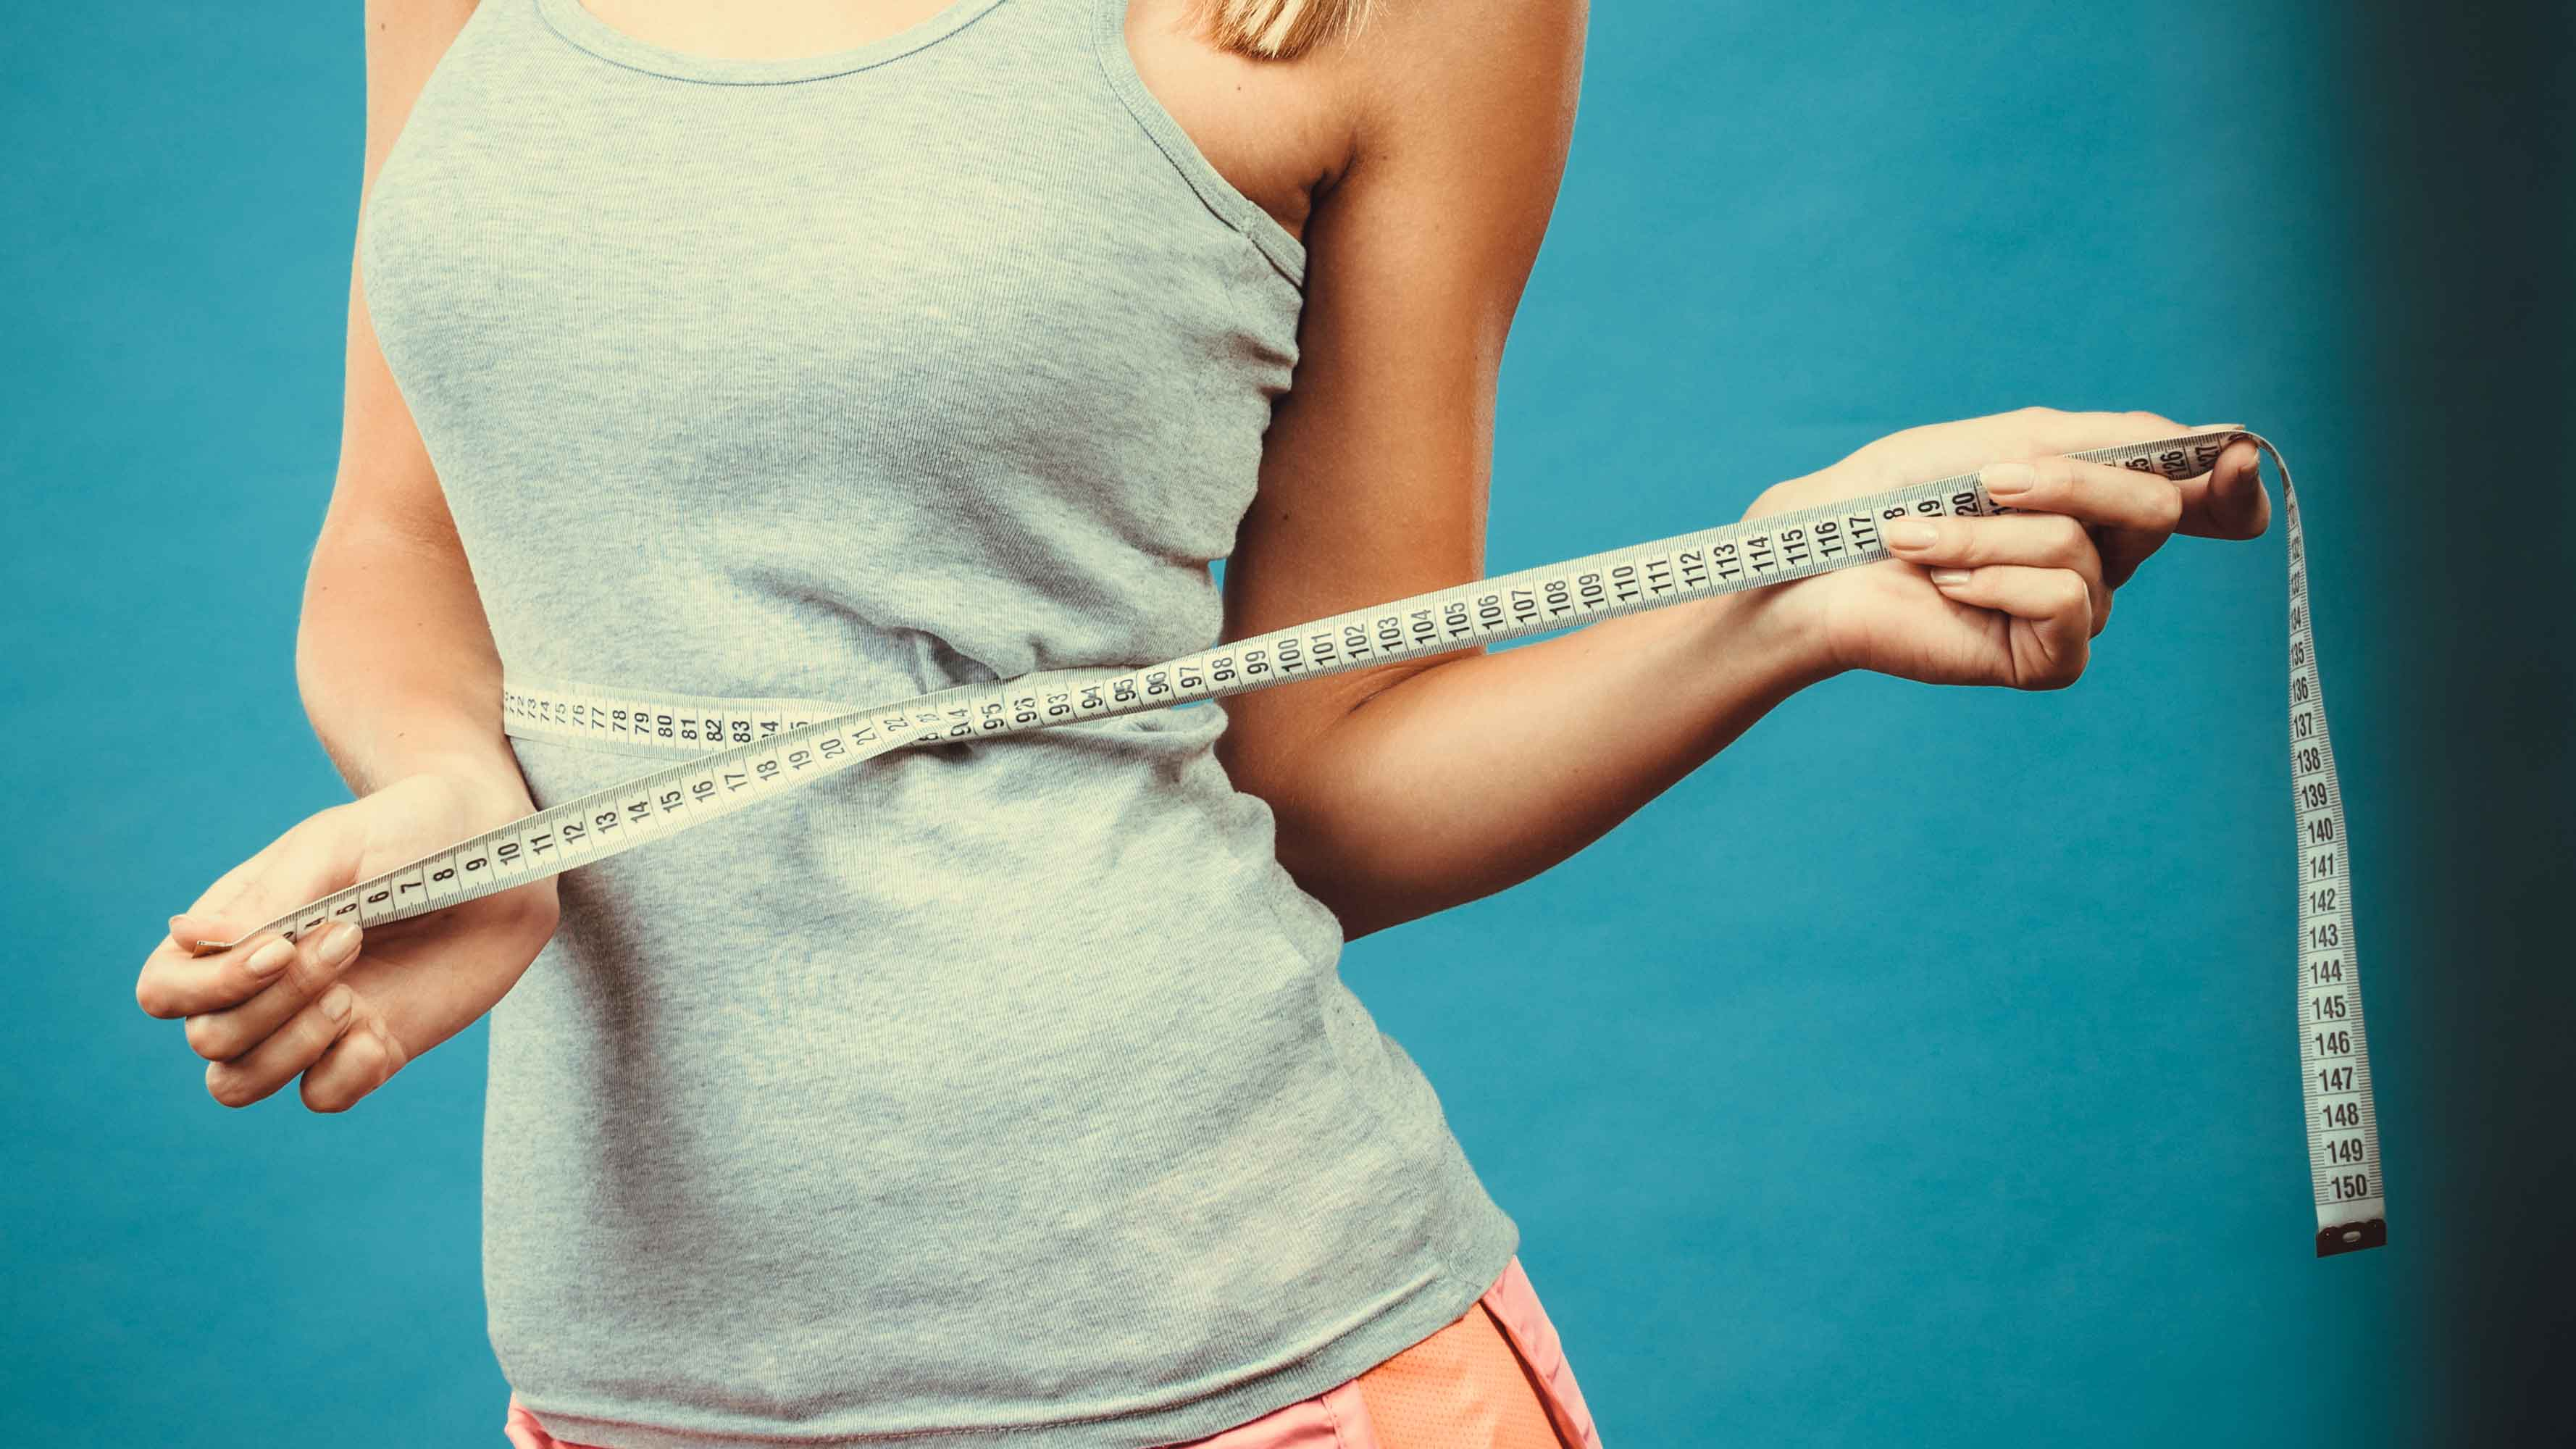 Why body composition matters far more than weight